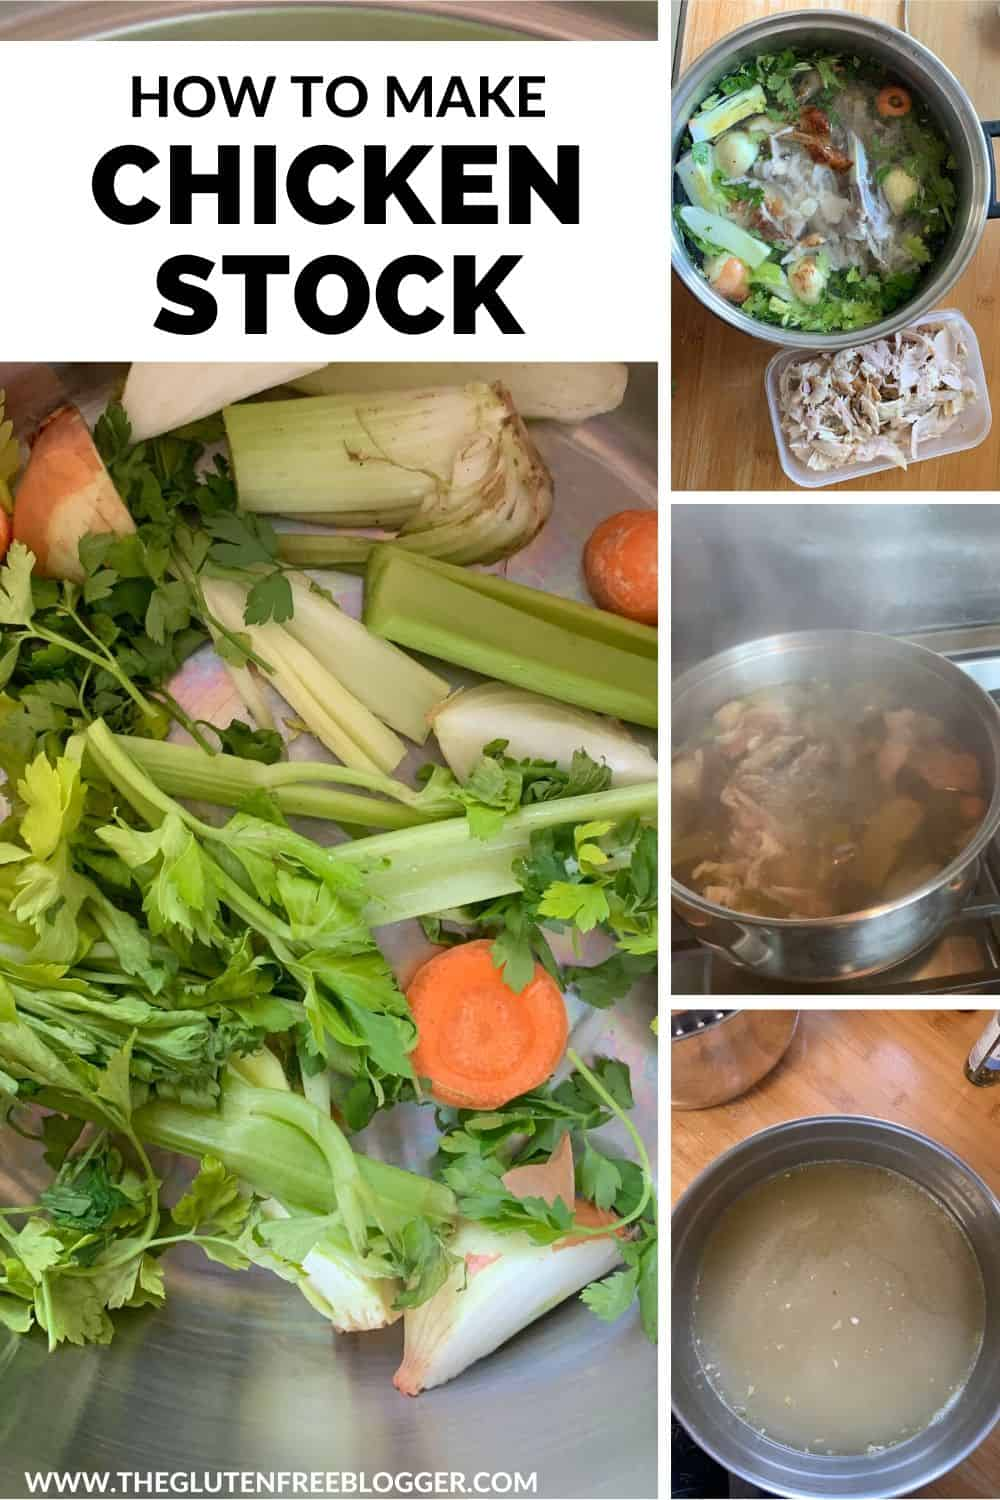 how to make gluten free chicken stock recipe from roast chicken carcass